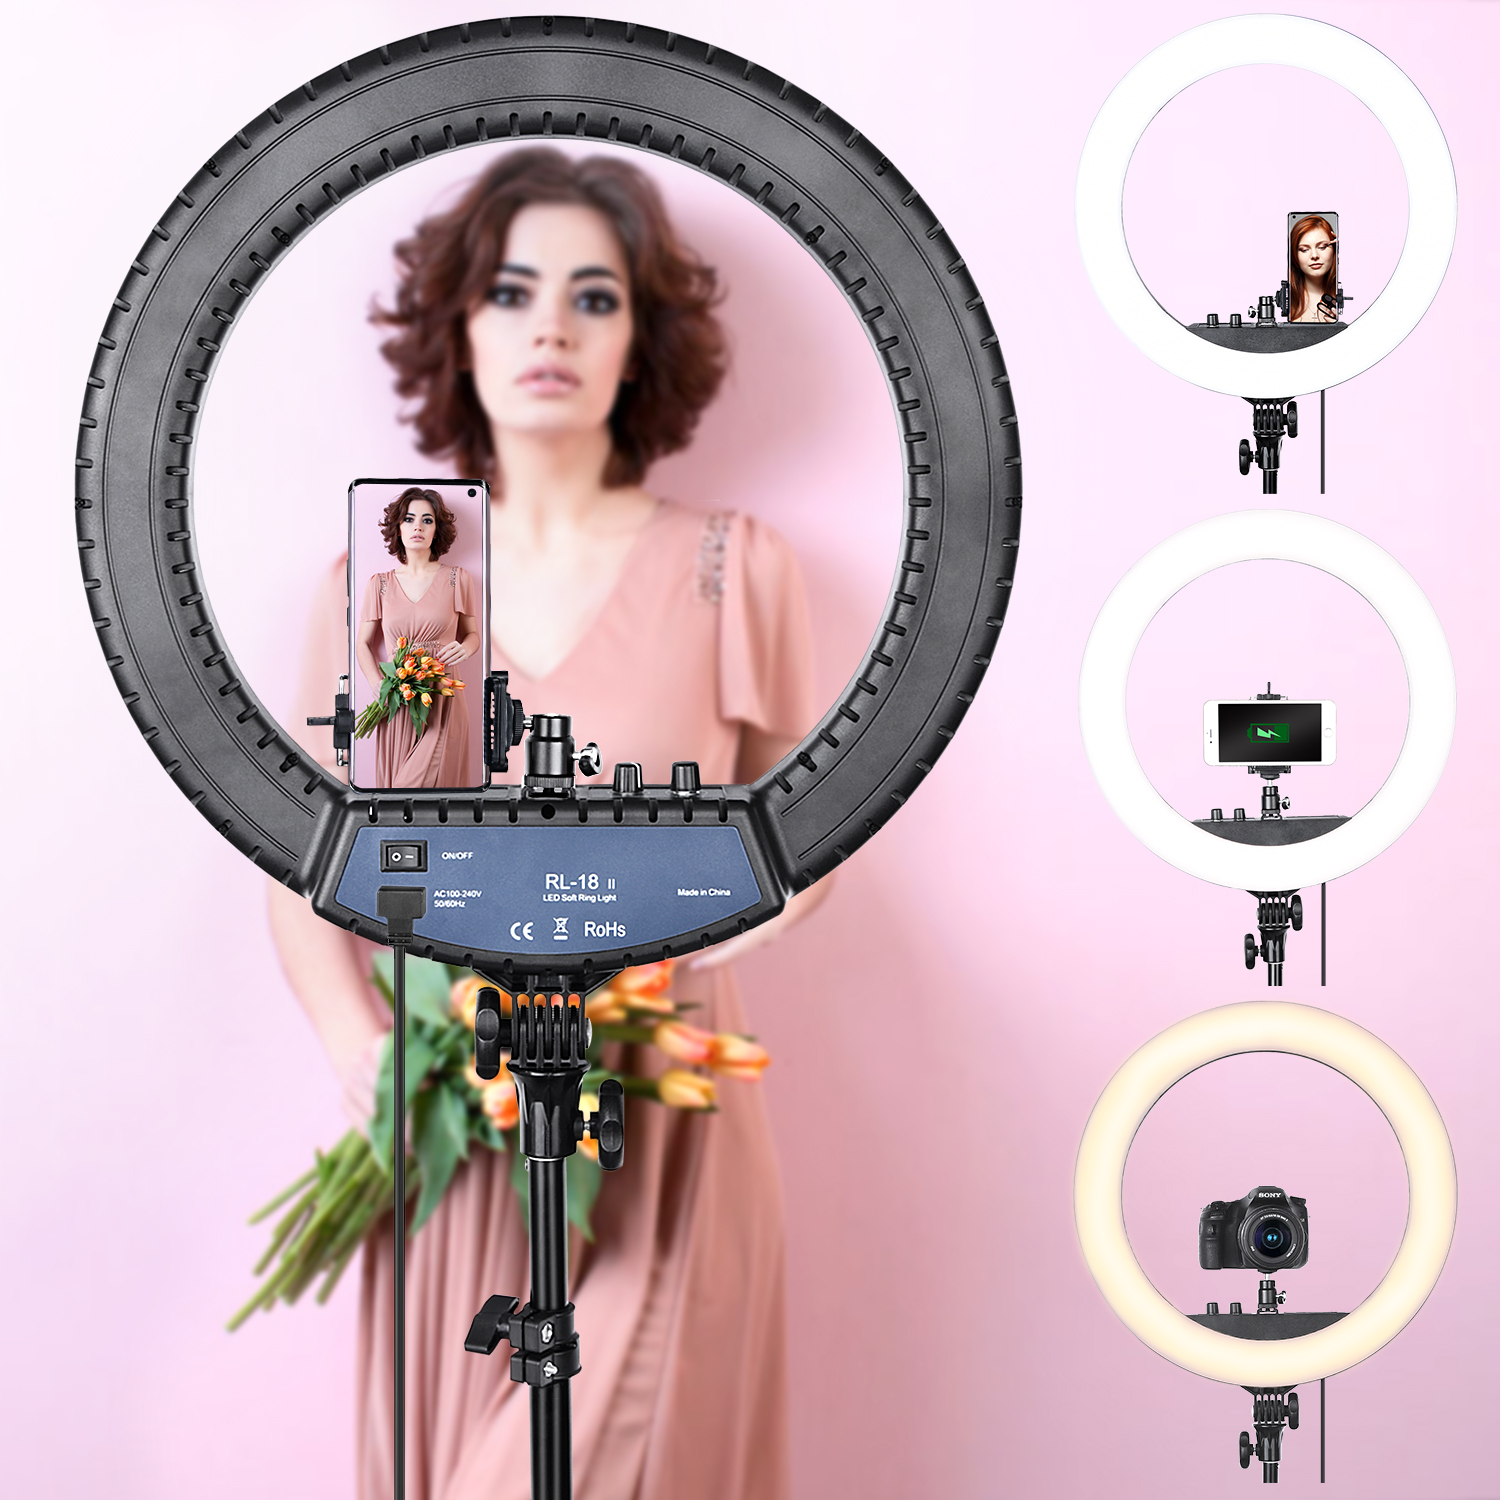 H7dfd9e91799d451bbf83ecff7a30555aE FOSOTO RL-18II Led Ring Light 18 Inch Ring Lamp 55W Ringlight Photography Lamp With Tripod Stand For Phone Makeup Youtube Tiktok